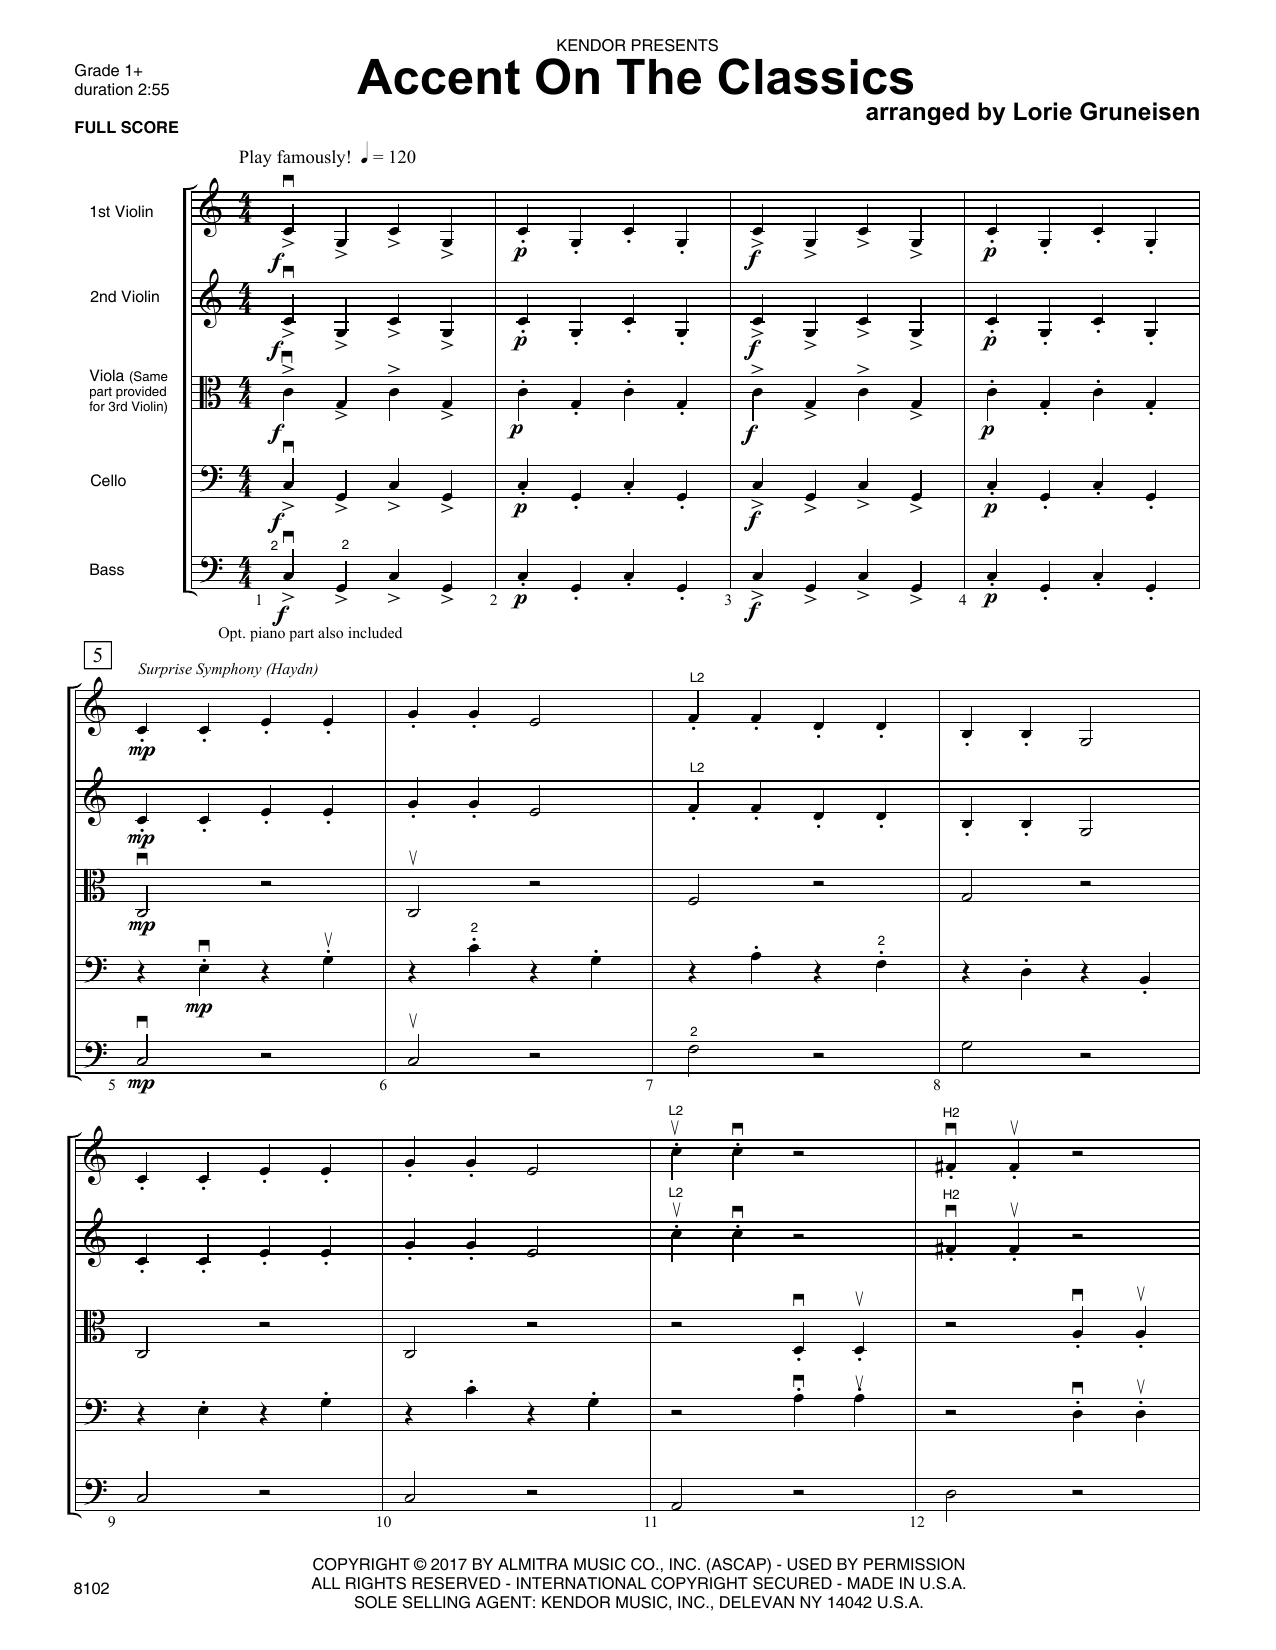 Accent On The Classics - Orchestra Music Download